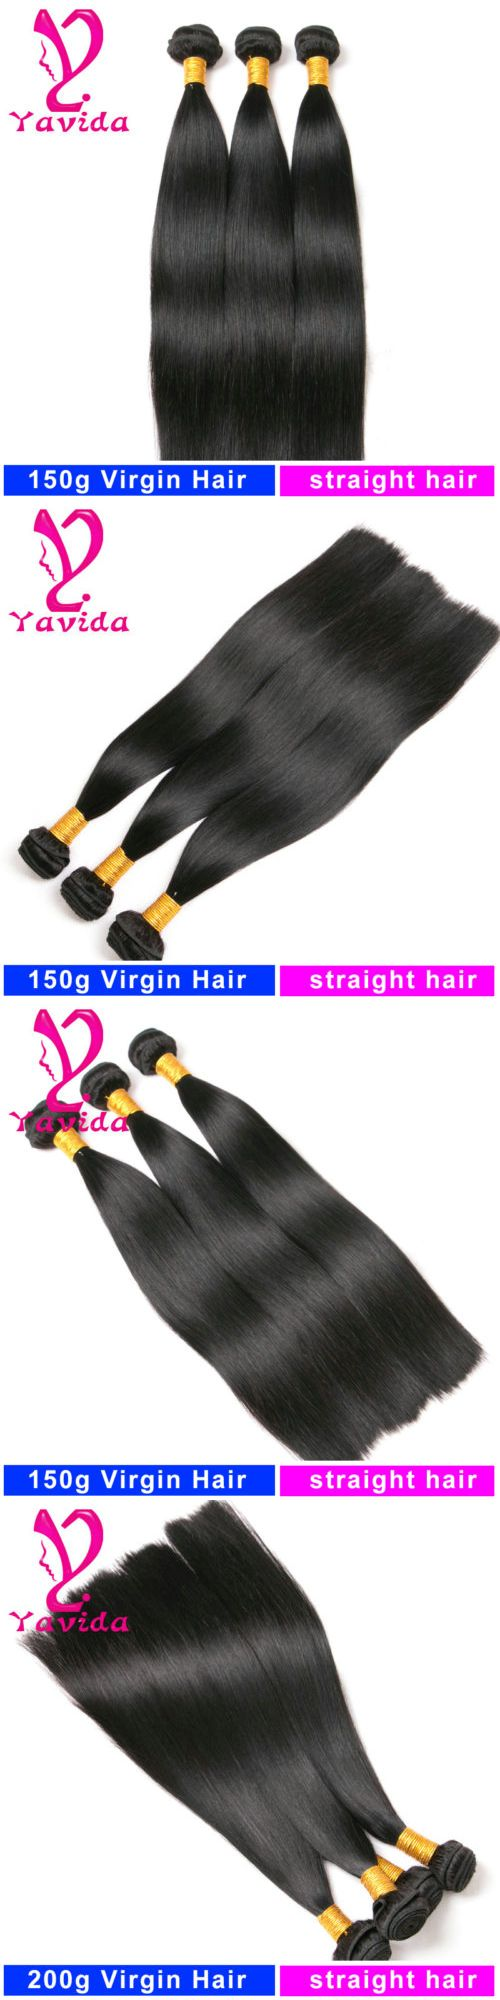 Hair Extensions: 8A Straight Human Hair Extensions Weave 3 Bundles 150G Brazilian Virgin Hair -> BUY IT NOW ONLY: $50.77 on eBay!